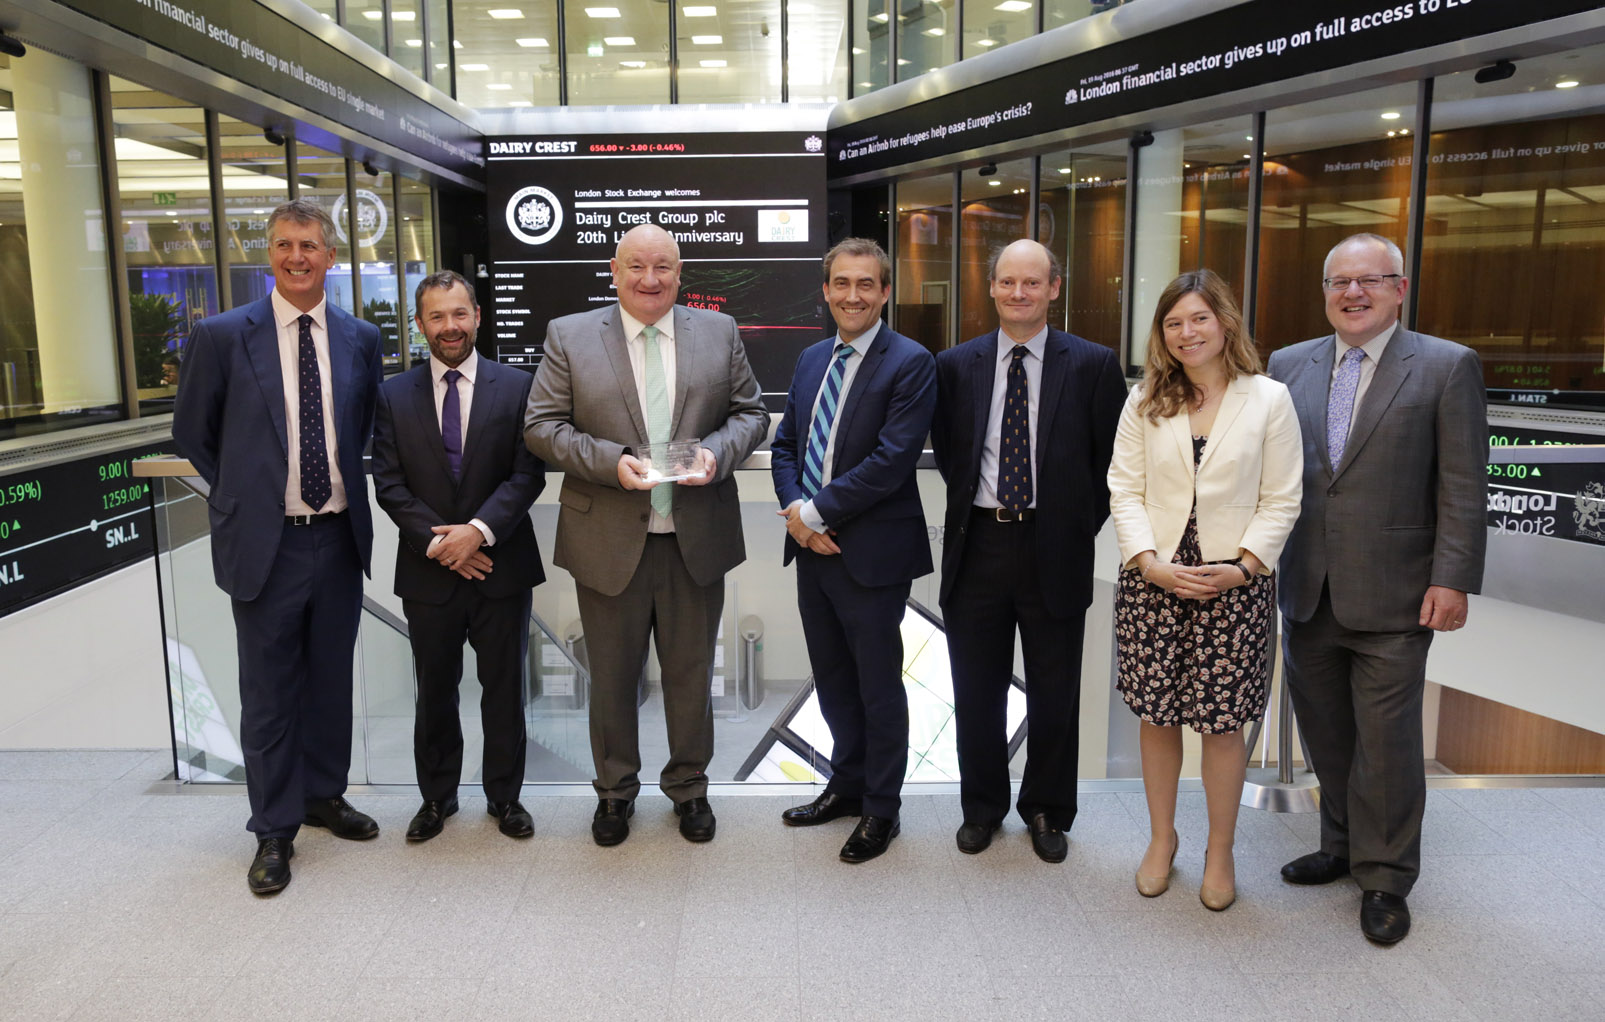 Dairy Crest opening the Stock Exchange